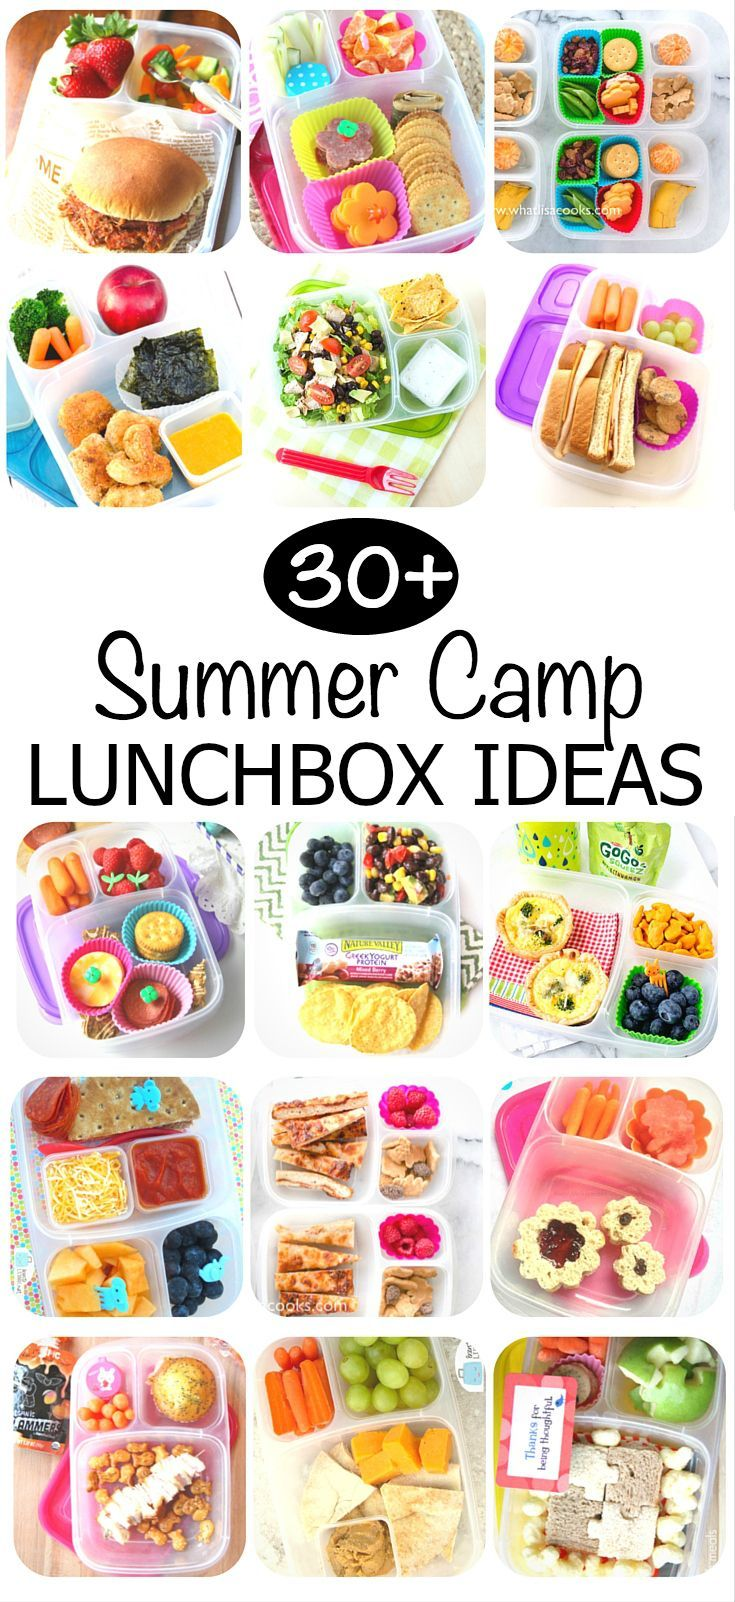 30+ Summer Camp Lunch Box ideas your kids will LOVE! Ideas and recipes included.